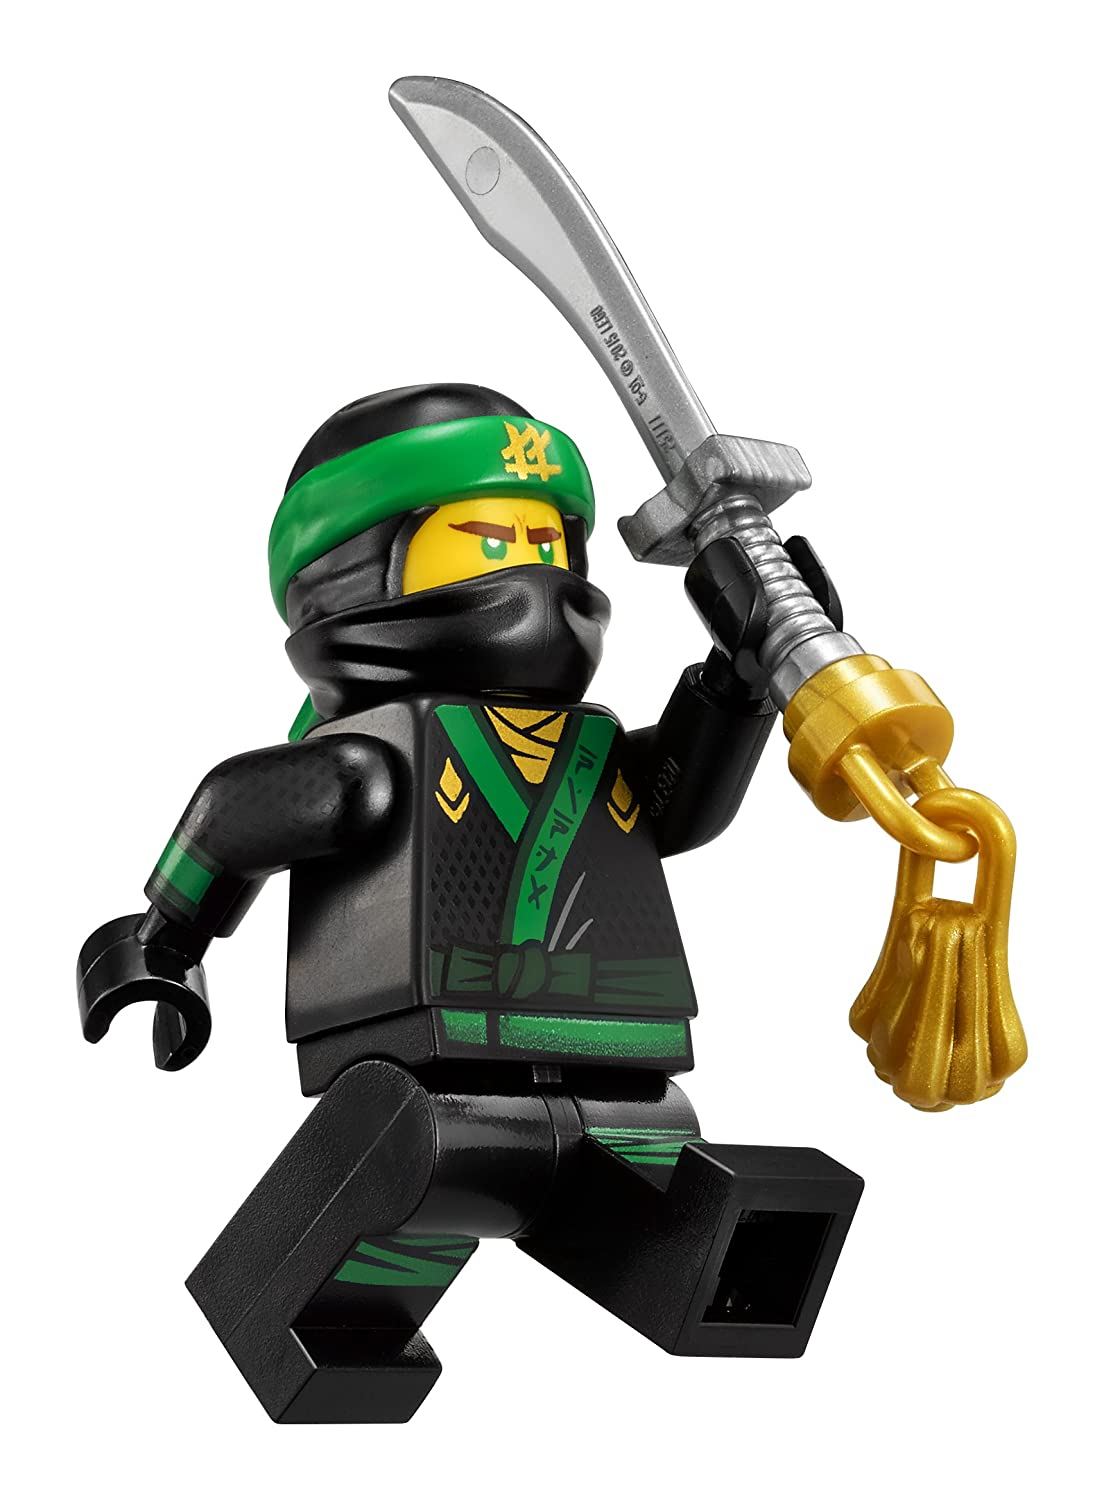 Amazon.com: LEGO Ninjago verde Ninja Mech Dragon 70612 Kit ...